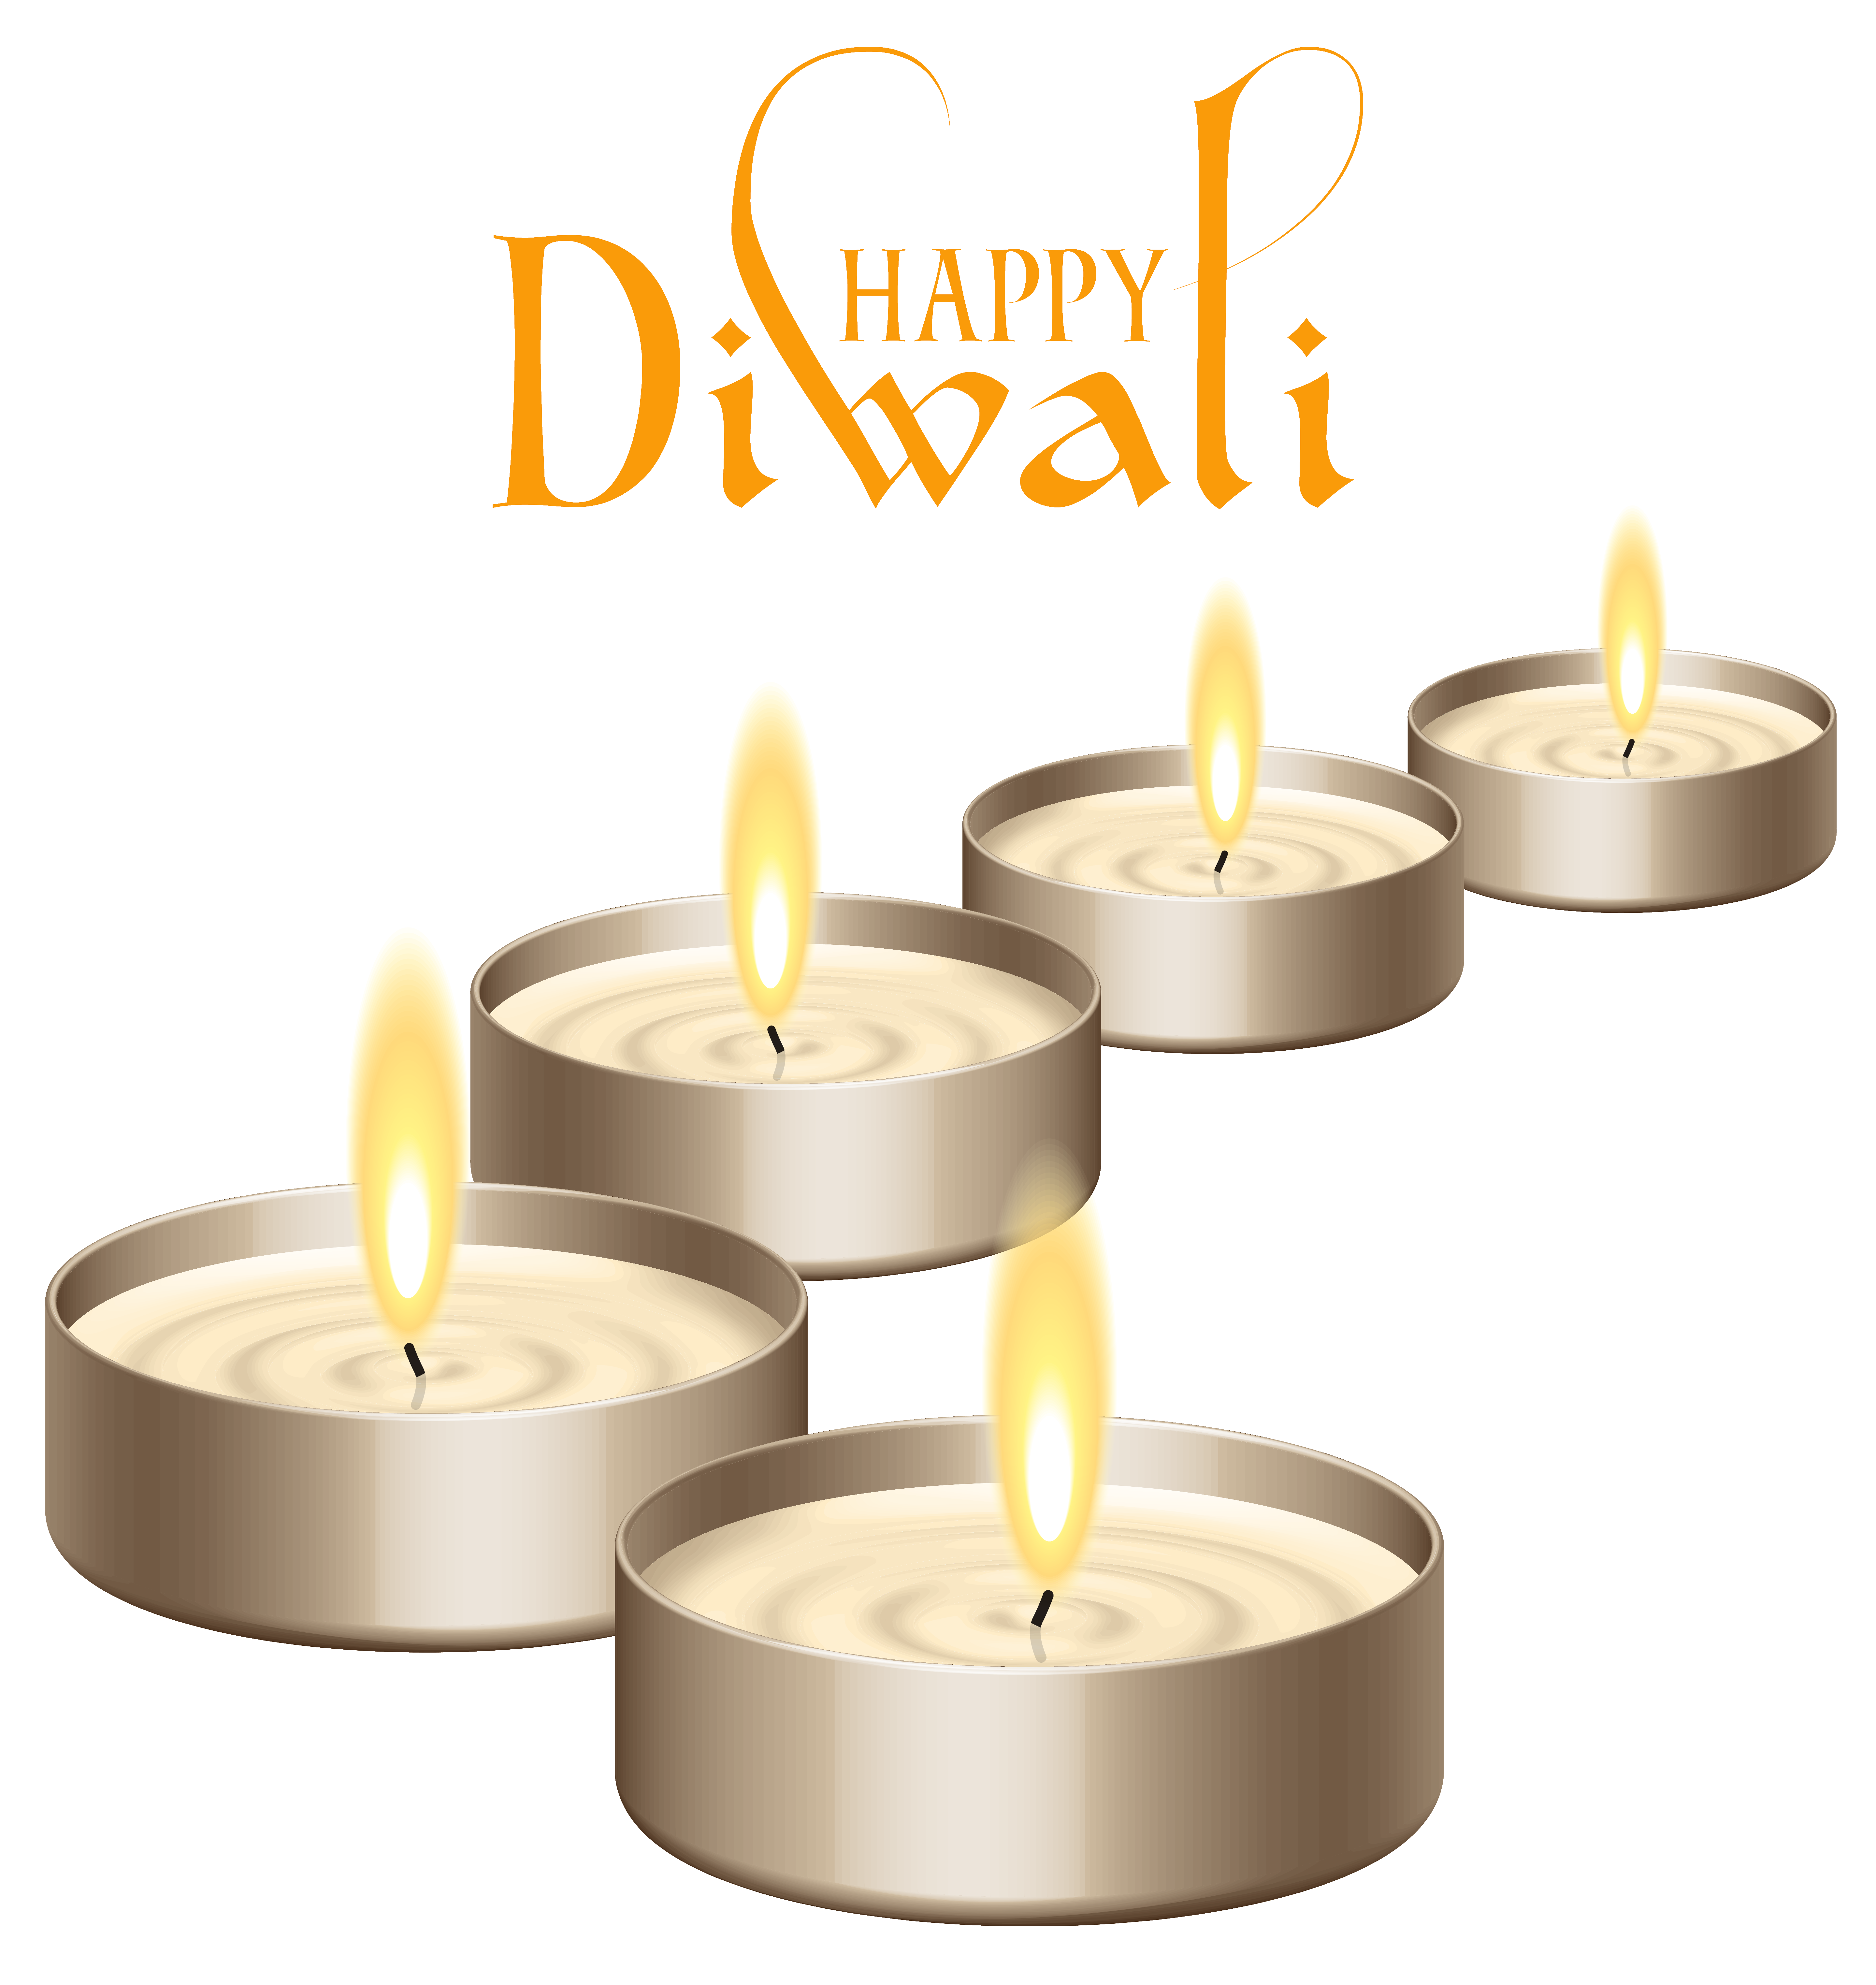 Happy diwali candles png. Free clipart candle